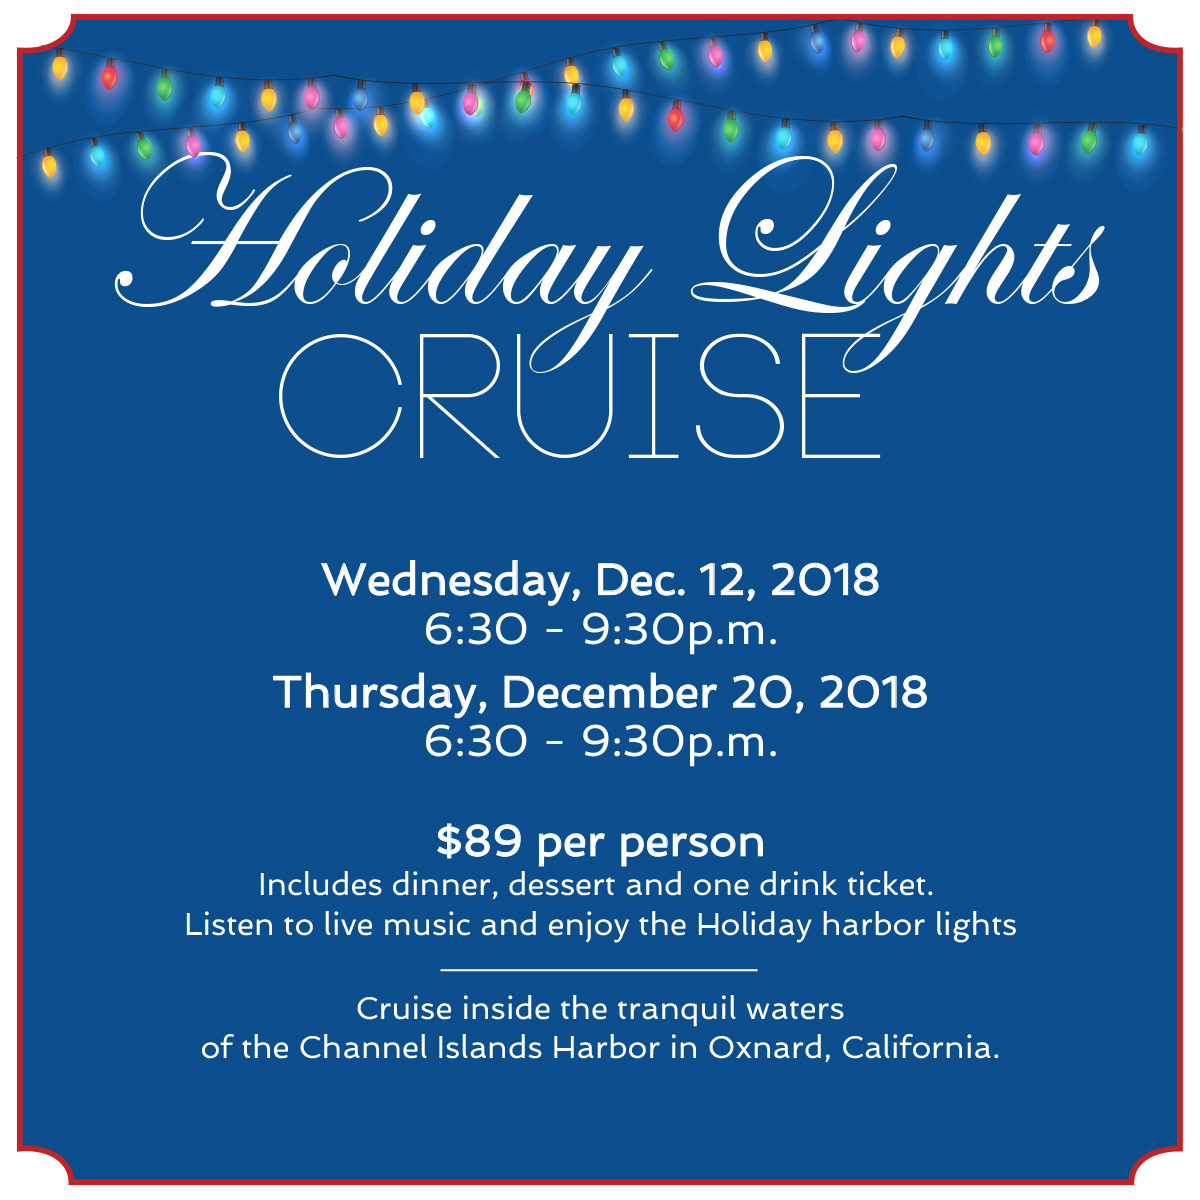 Holiday Lights Cruise